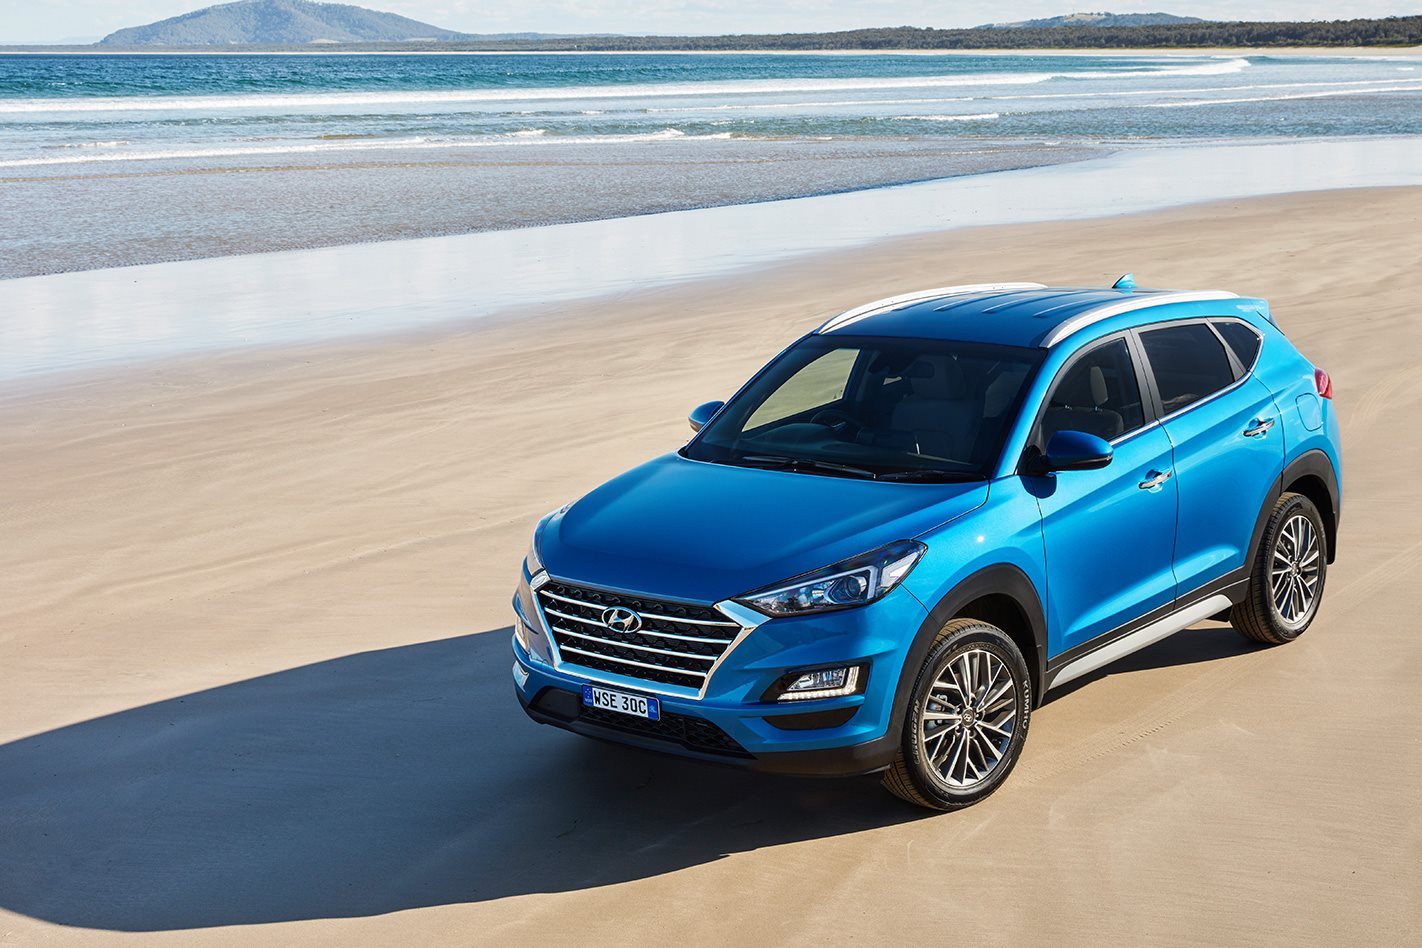 2019 Hyundai Tucson CRDi Elite review